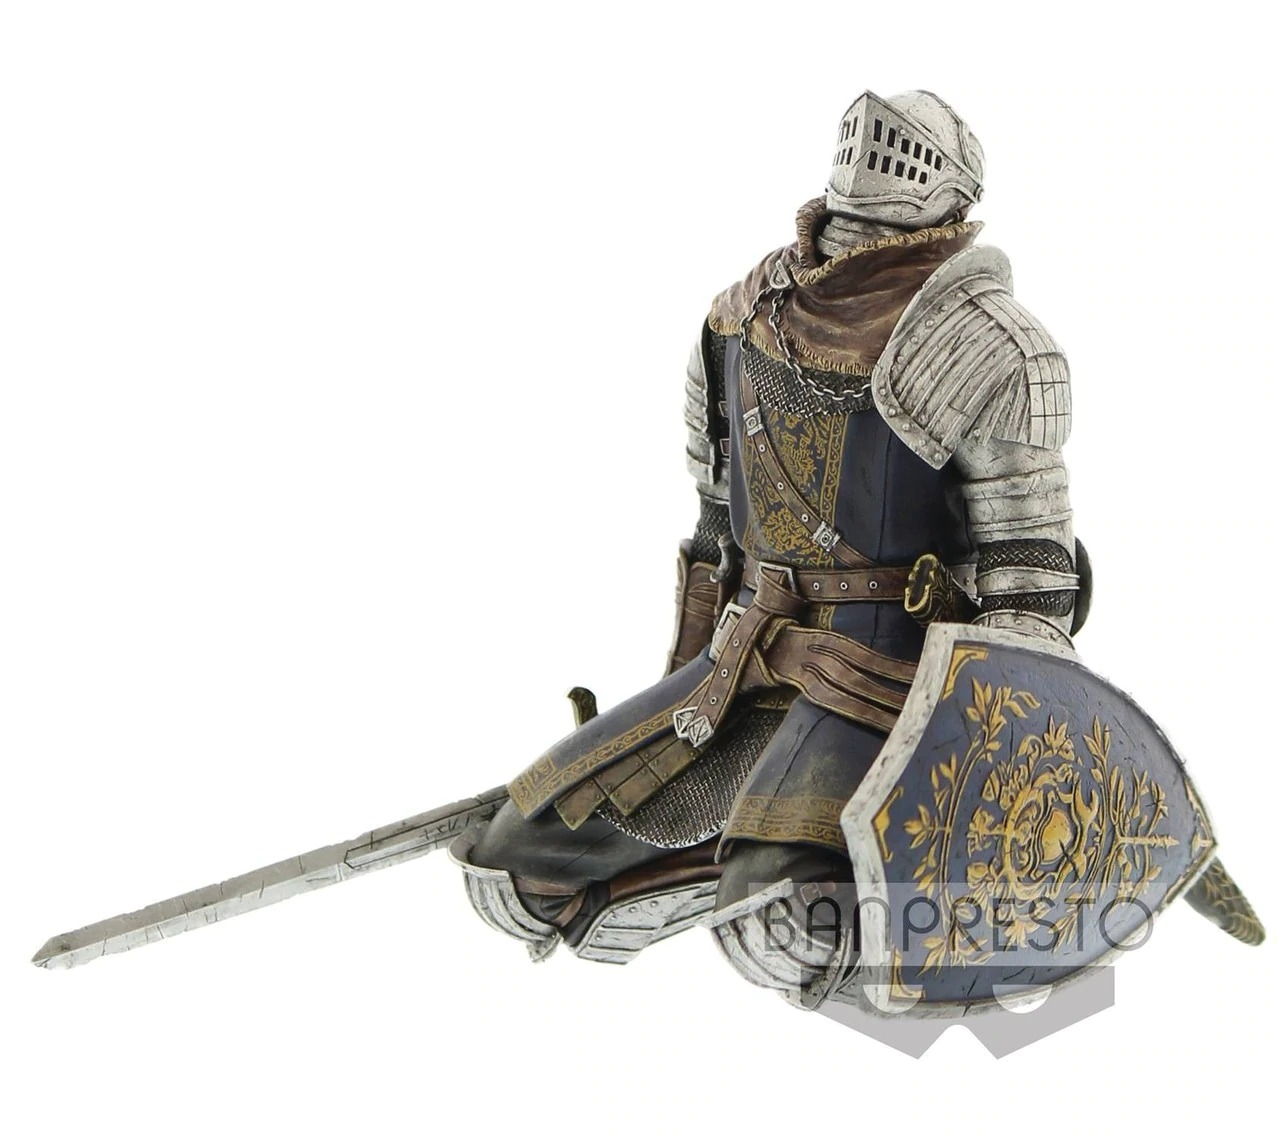 Dark Soul Sculpt Collection Vol. 4 - Oscar Knight of Astora